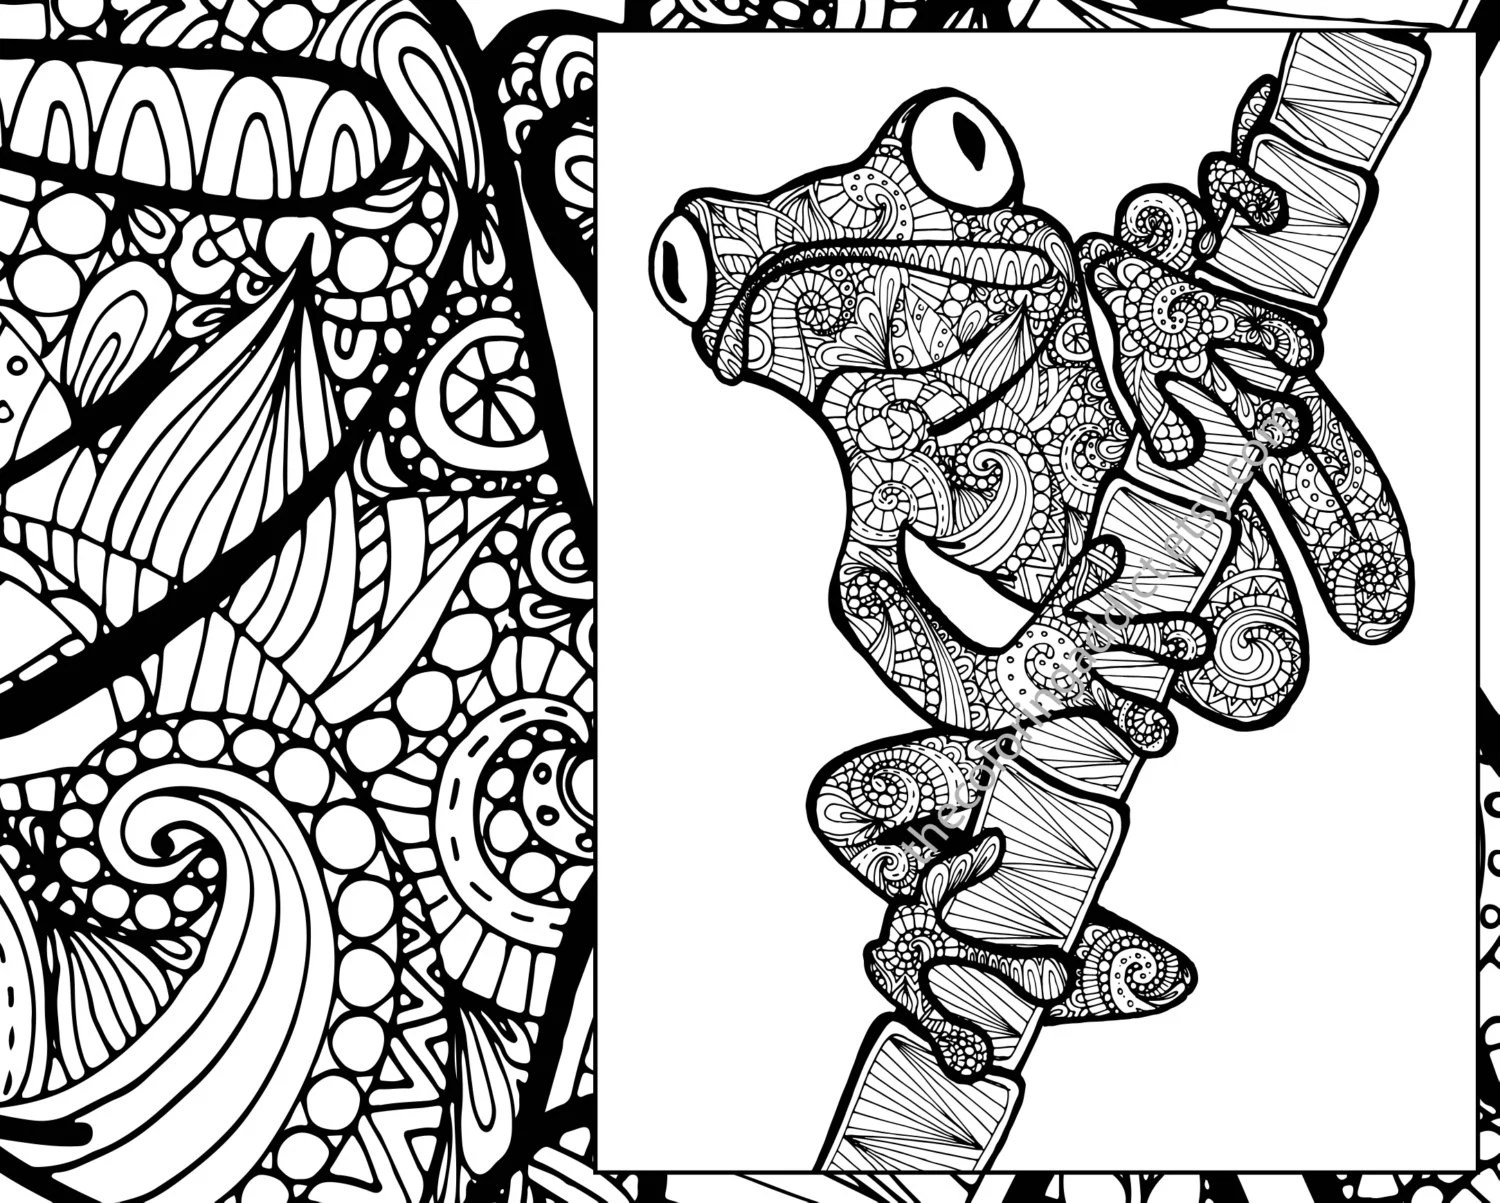 Frog Coloring Sheet Animal Coloring Zentangle Adult